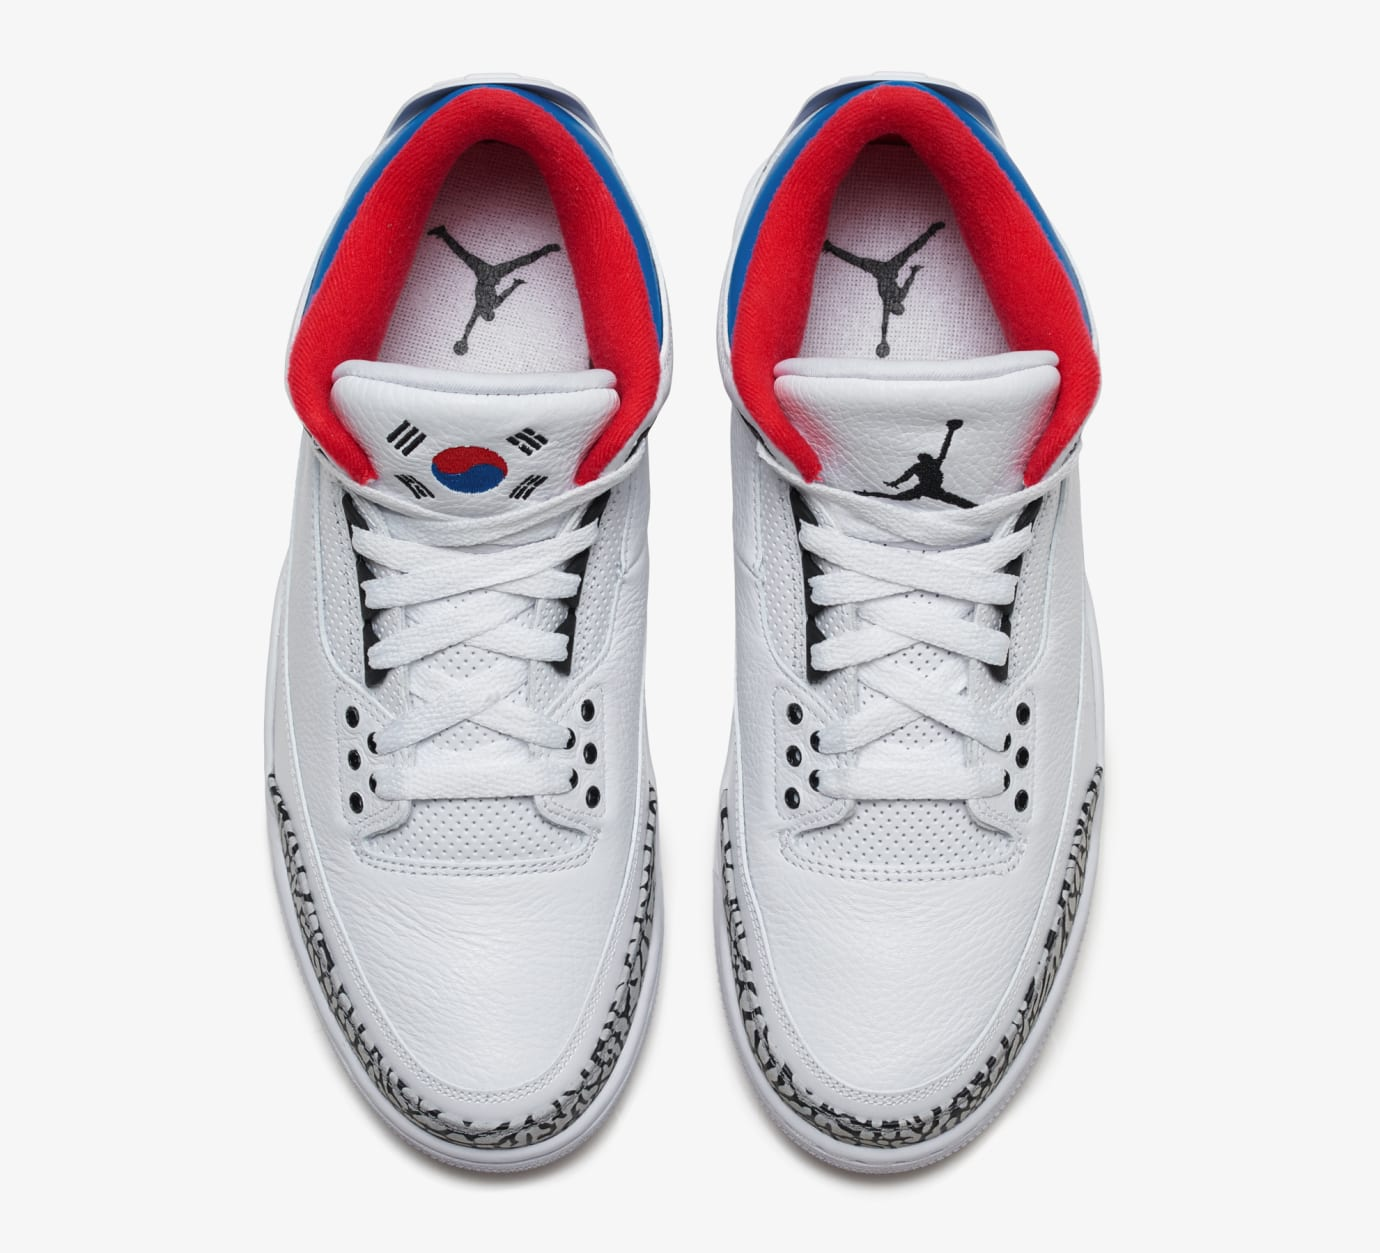 hot sales 1495d 9a5a7 Air Jordan 3 'Korea' Release Date | Sole Collector